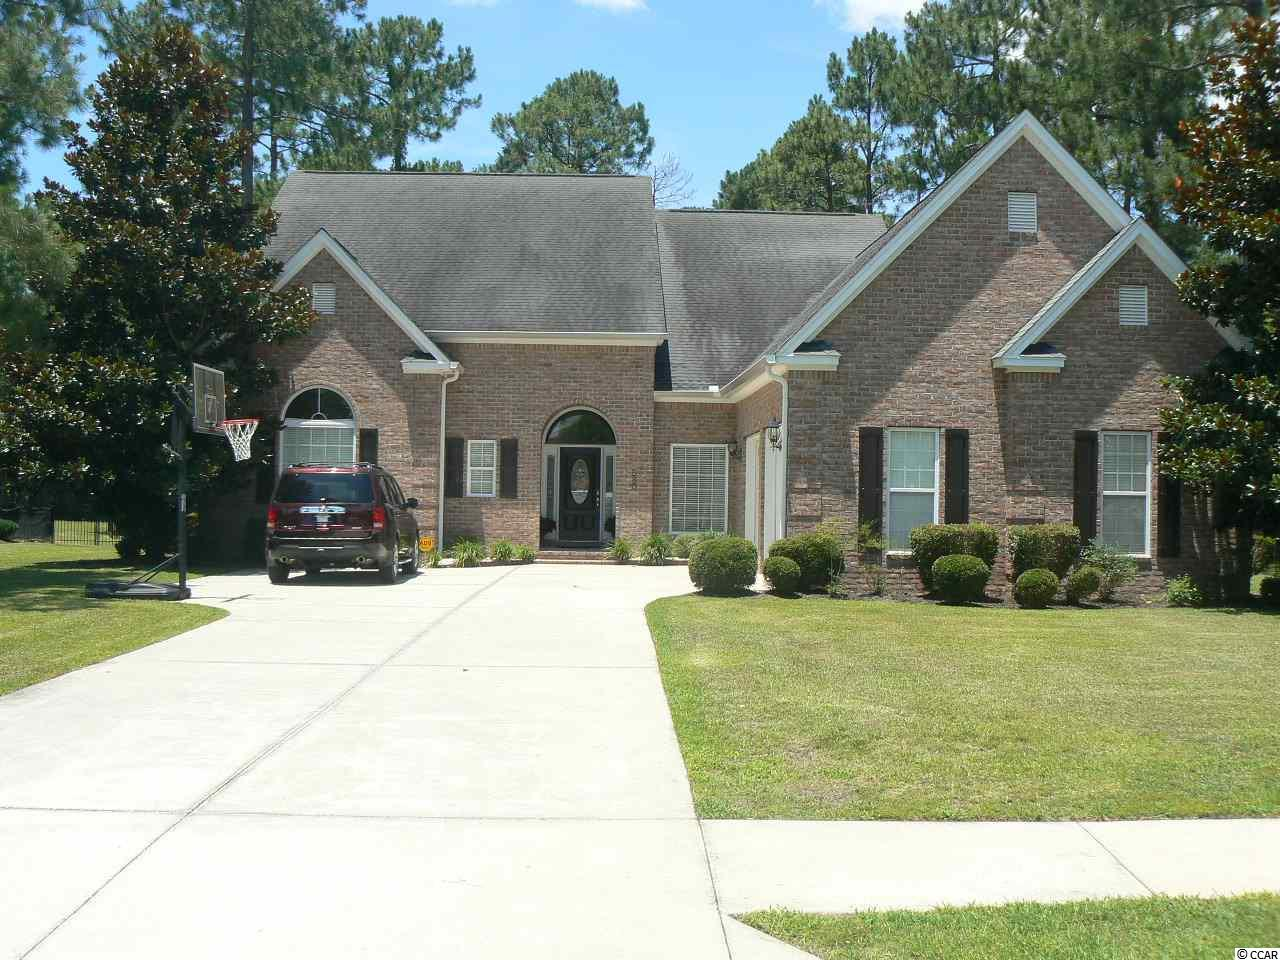 Here is your opportunity to own an incredible, all brick home in one of the most sought after neighborhoods in Myrtle Beach. This impressive home features a spacious split floor plan that is filled with natural light, formal dining, spa-like master bath, and large master bedroom that opens directly to a private screen porch that backs up to the peaceful seclusion of nature. Upstairs features a large bonus room already equipped with projector and media screen for fun-filled movie/game nights. The large bonus room also opens to the upstairs balcony overlooking the peaceful back yard and beautiful pergola and outdoor living space equipped with a grill and patio furniture. The spacious upstairs also features 3 large bedrooms and a full bath. One of the large upstairs bedrooms has direct access to the upstairs balcony as well as an additional room ideal for a nursery or office. Interior of the home has just been completed repainted and is ready for your personal touches. Plantation Lakes is located within mere minutes of all that Myrtle  Beach has to offer but feels miles away from the hustle and bustle. Incredible schools, new medical facilities, impressive community pool and amenity center, fine dining, major highways, airport, and of course the beautiful beach are all within 15 minutes drive time. Quiet streets and a peaceful neighborhood great for a leisurely stroll or exercise.   Make this home a must see!